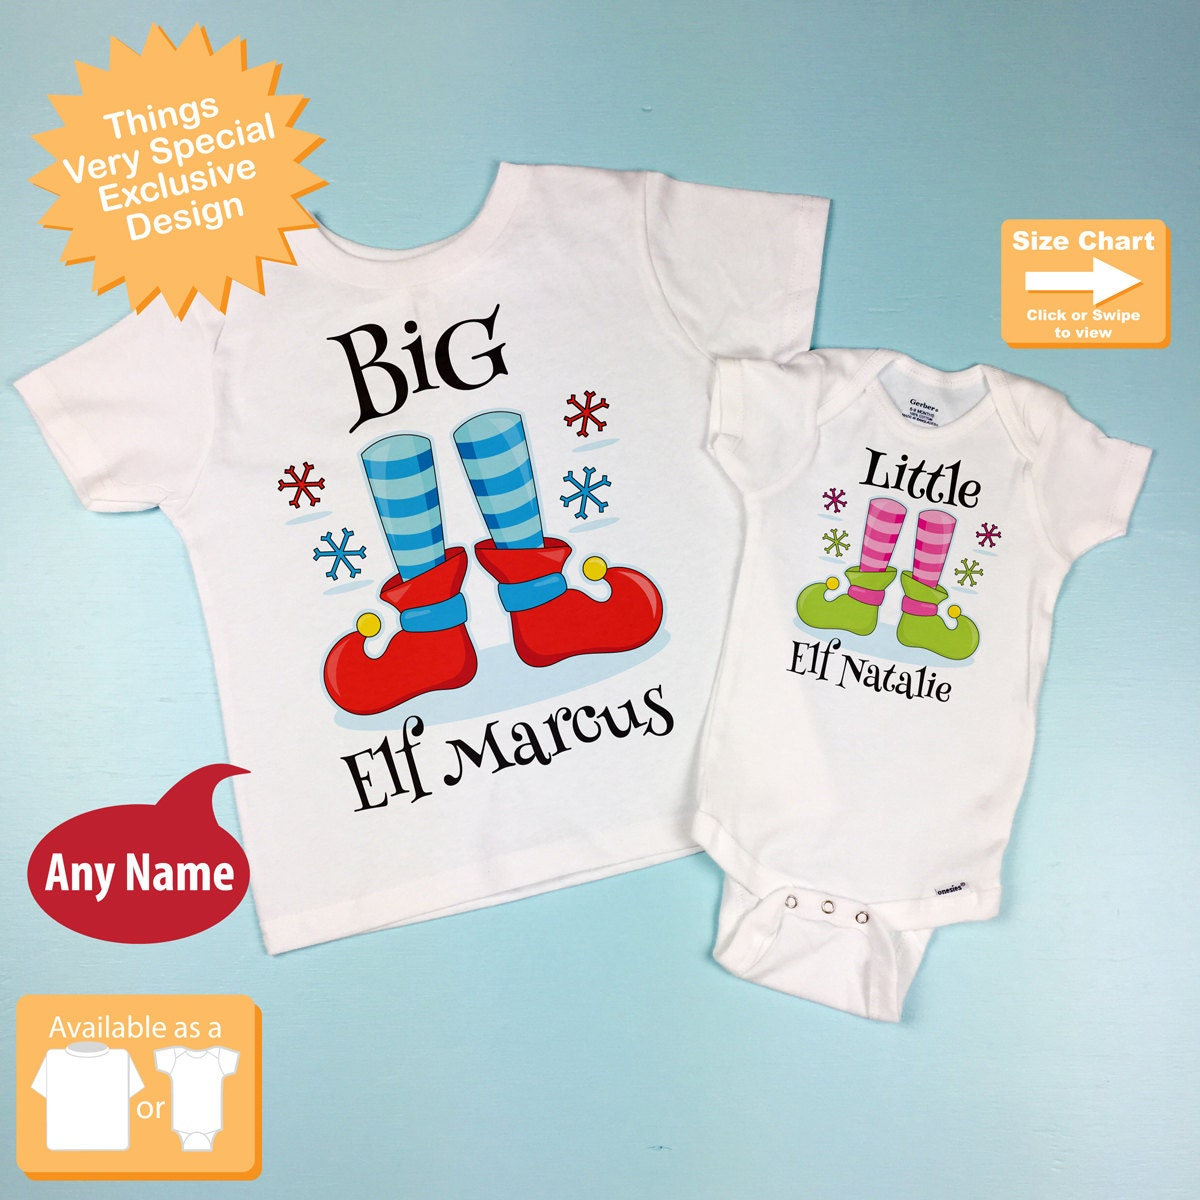 2fa893fd2 Set of Two - Kids Christmas outfits for Big Brother and Little Sister - T- Shirt or Onesie, Price is for Both 11302105d. gallery photo ...